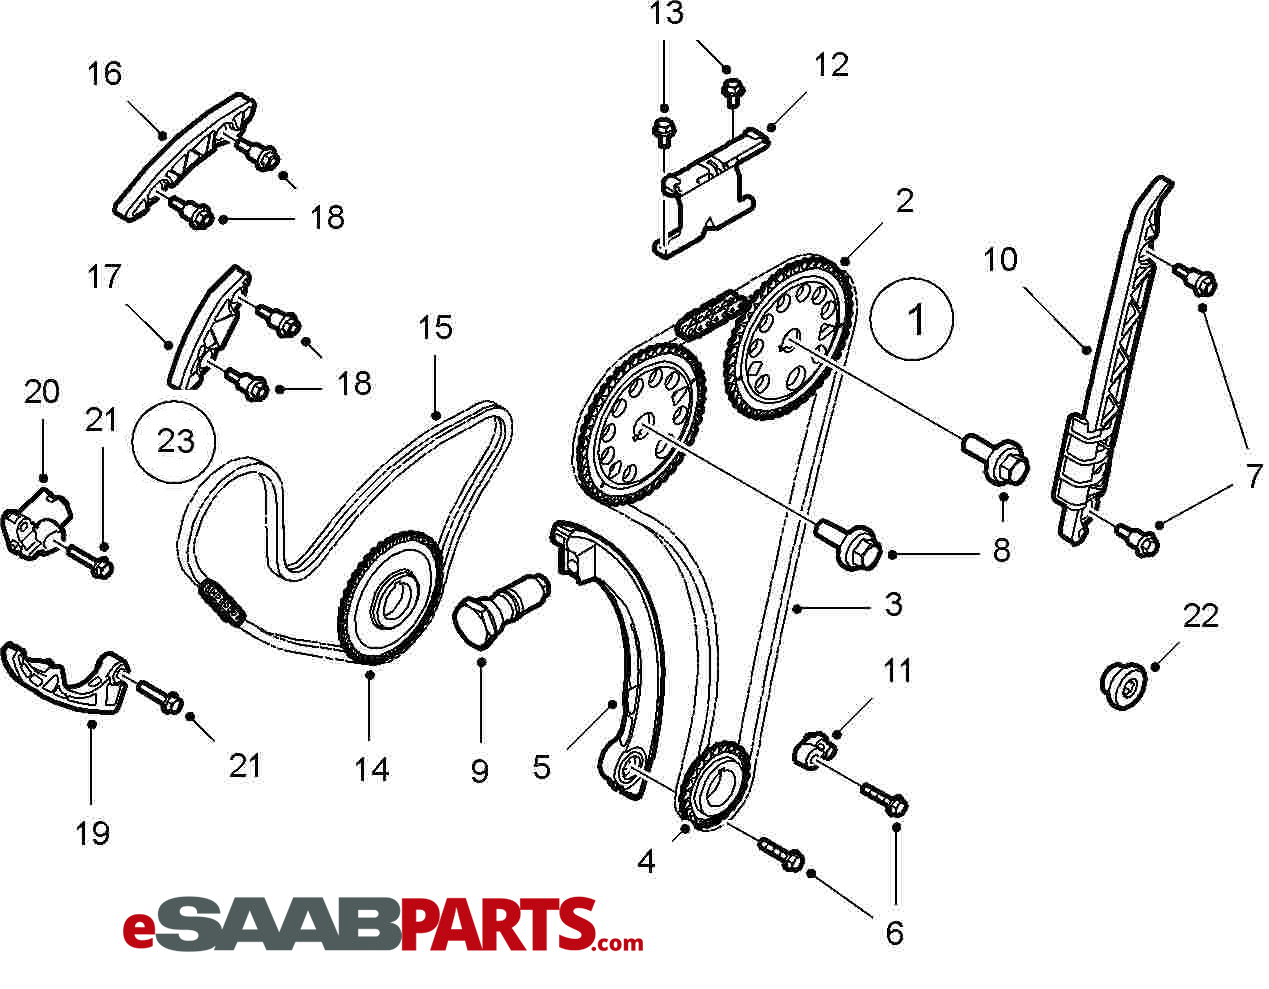 Saab 9 3 Parts Diagram Together With Saab 9 5 Transmission On Saab